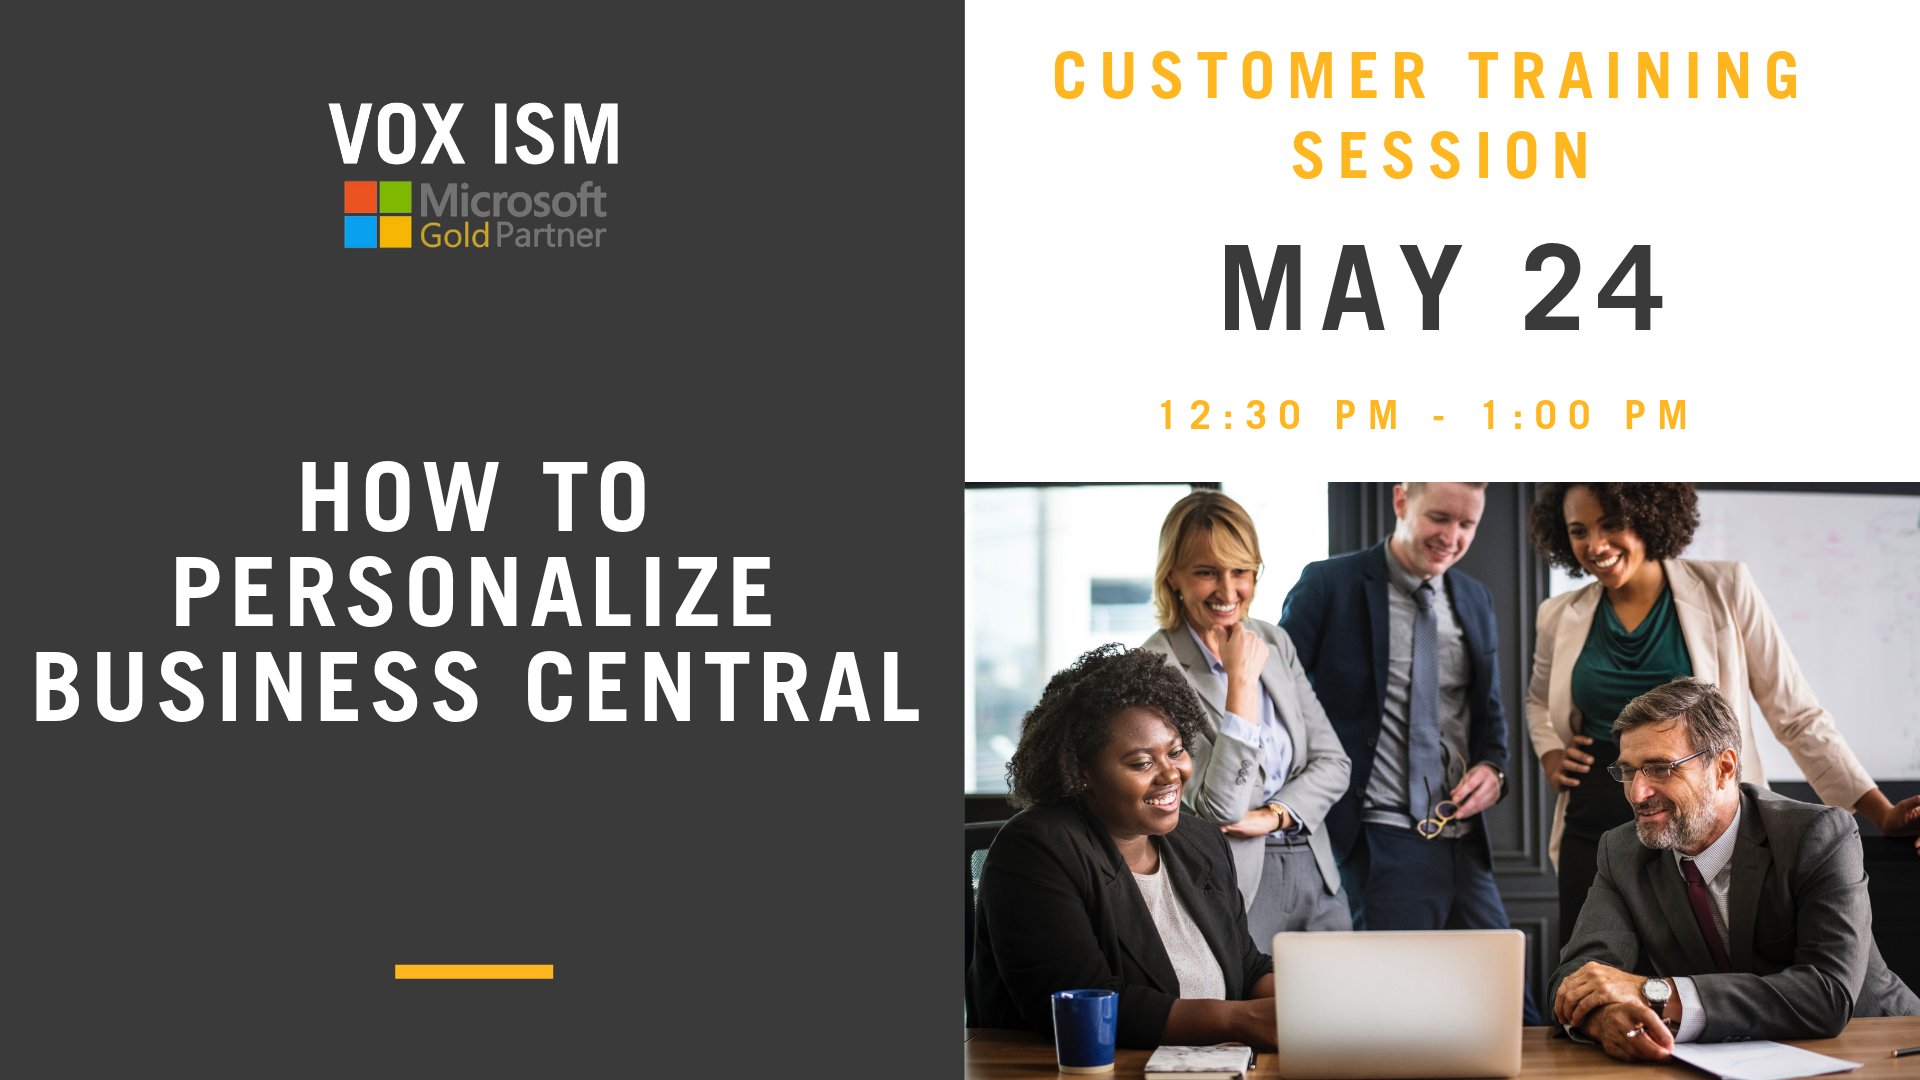 How To Personalize Business Central – May 24 – Customer Session